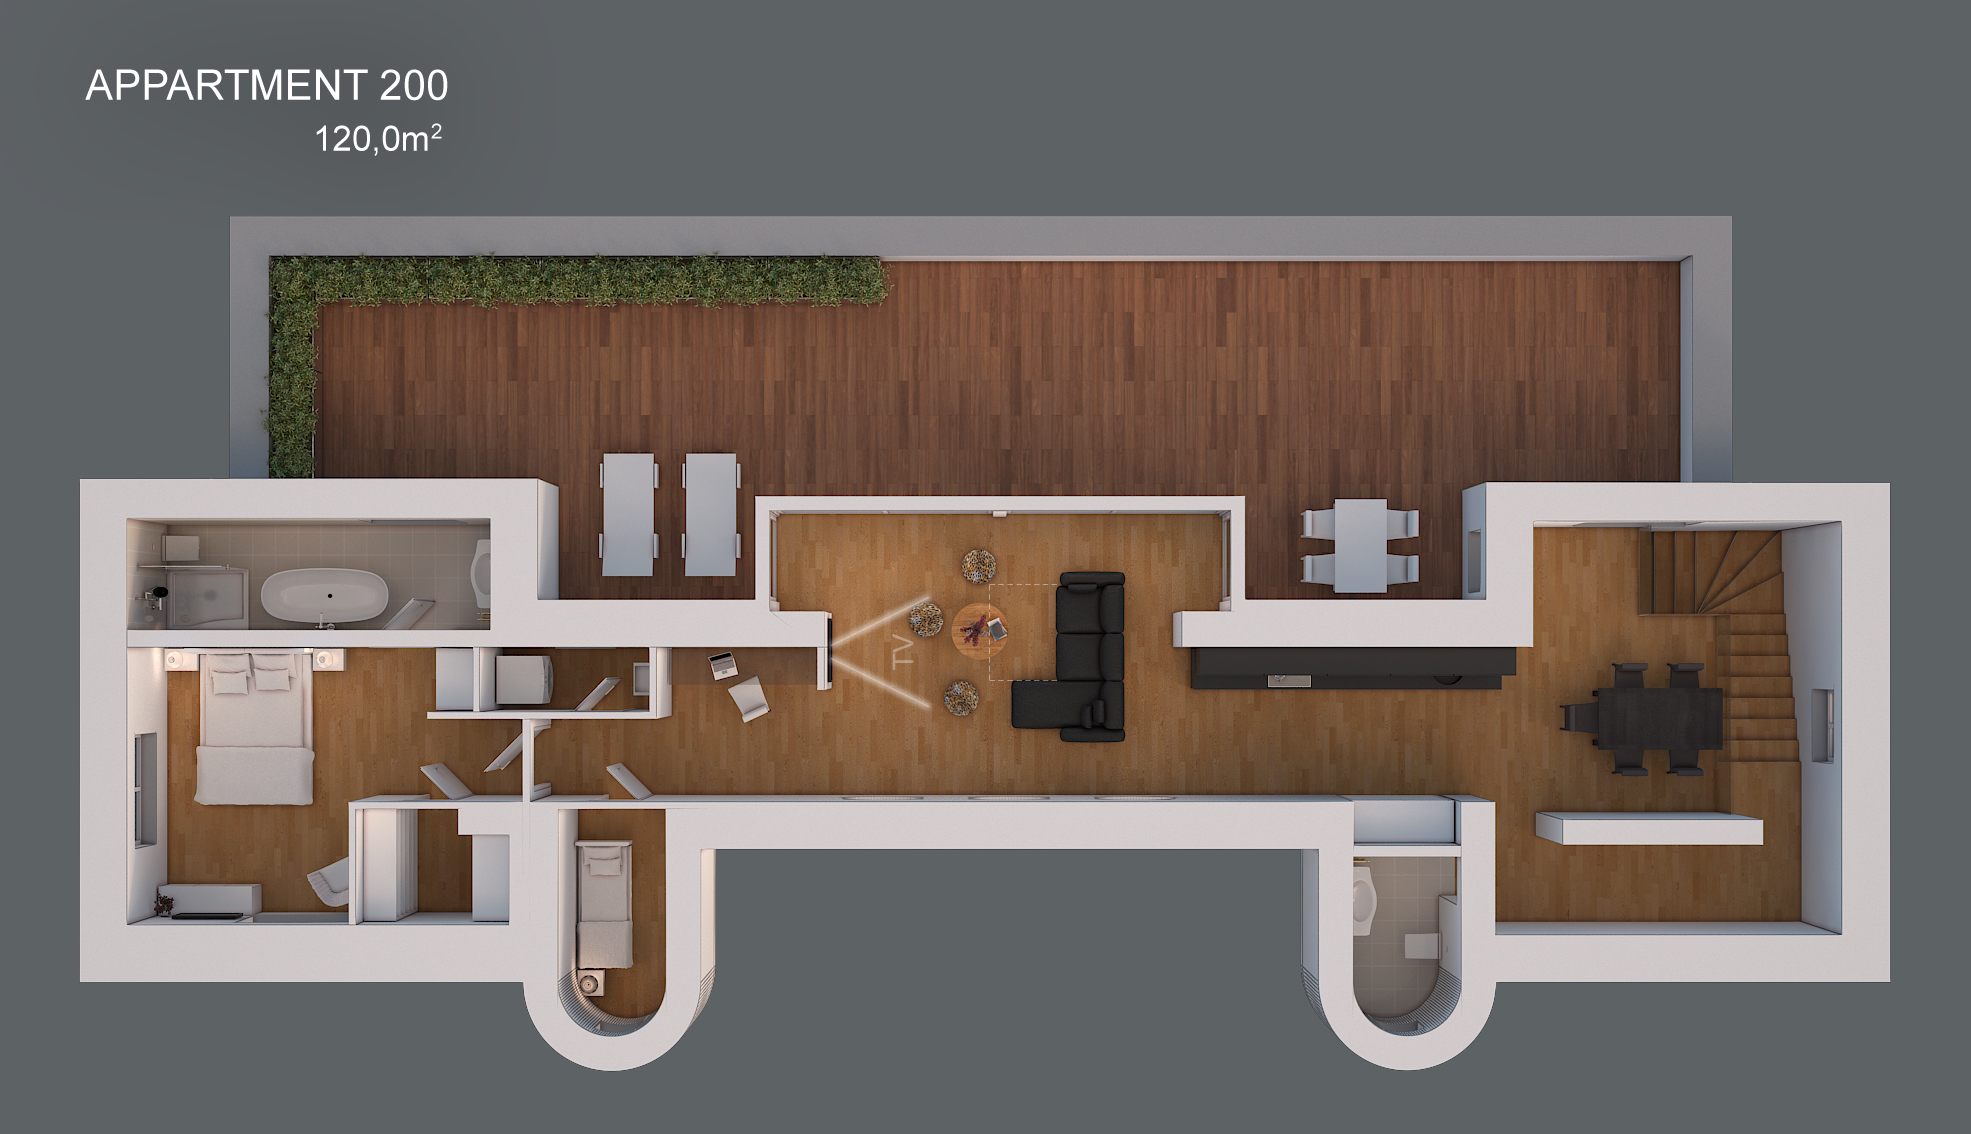 Apartment 200 layout